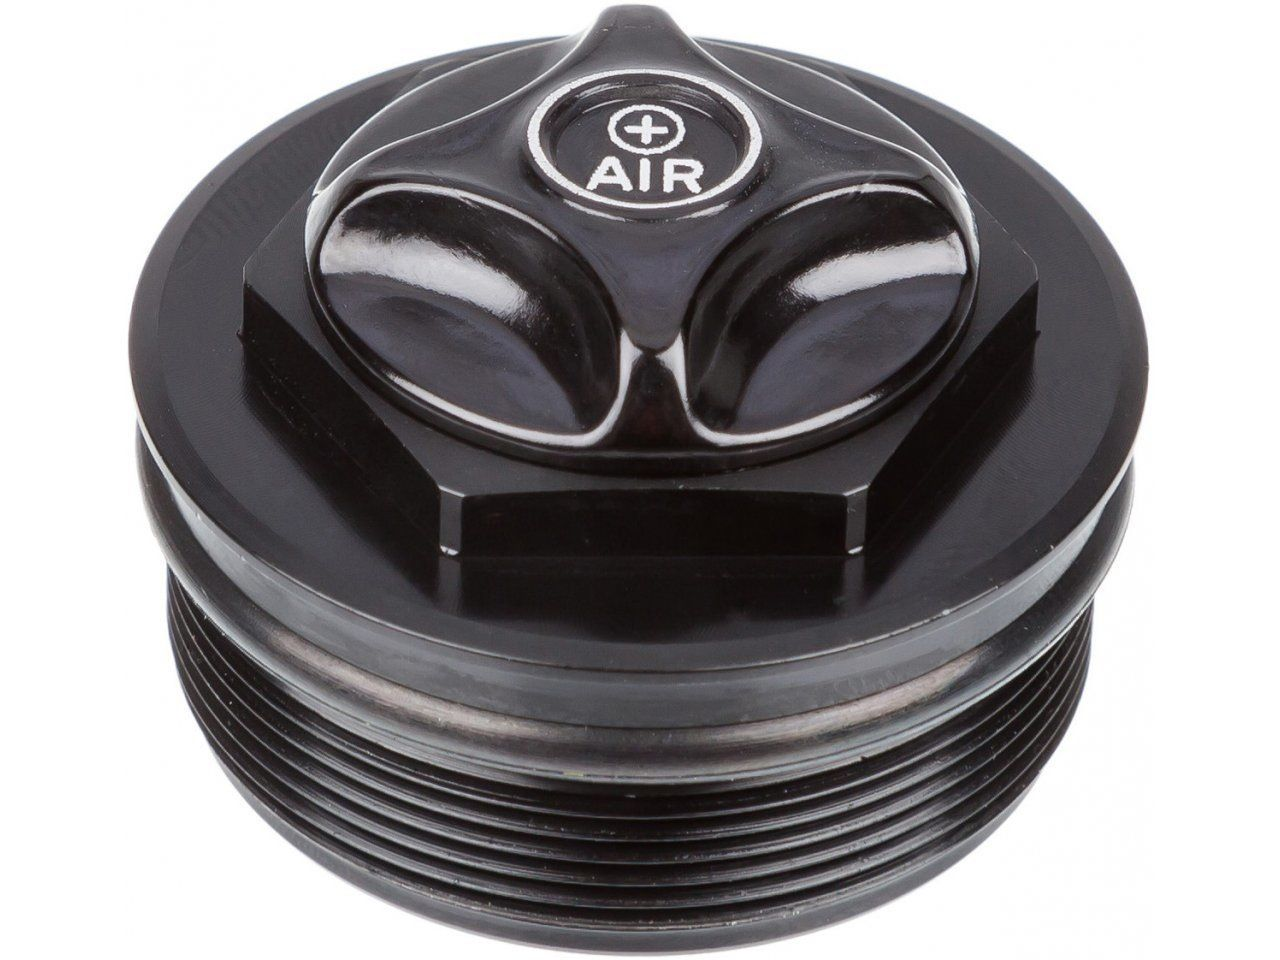 RockShox-Air-Top-Cap-Solo-Air-for-Pike-Models-2014-2016-black-universal-37285-109921-14812682021.jpeg